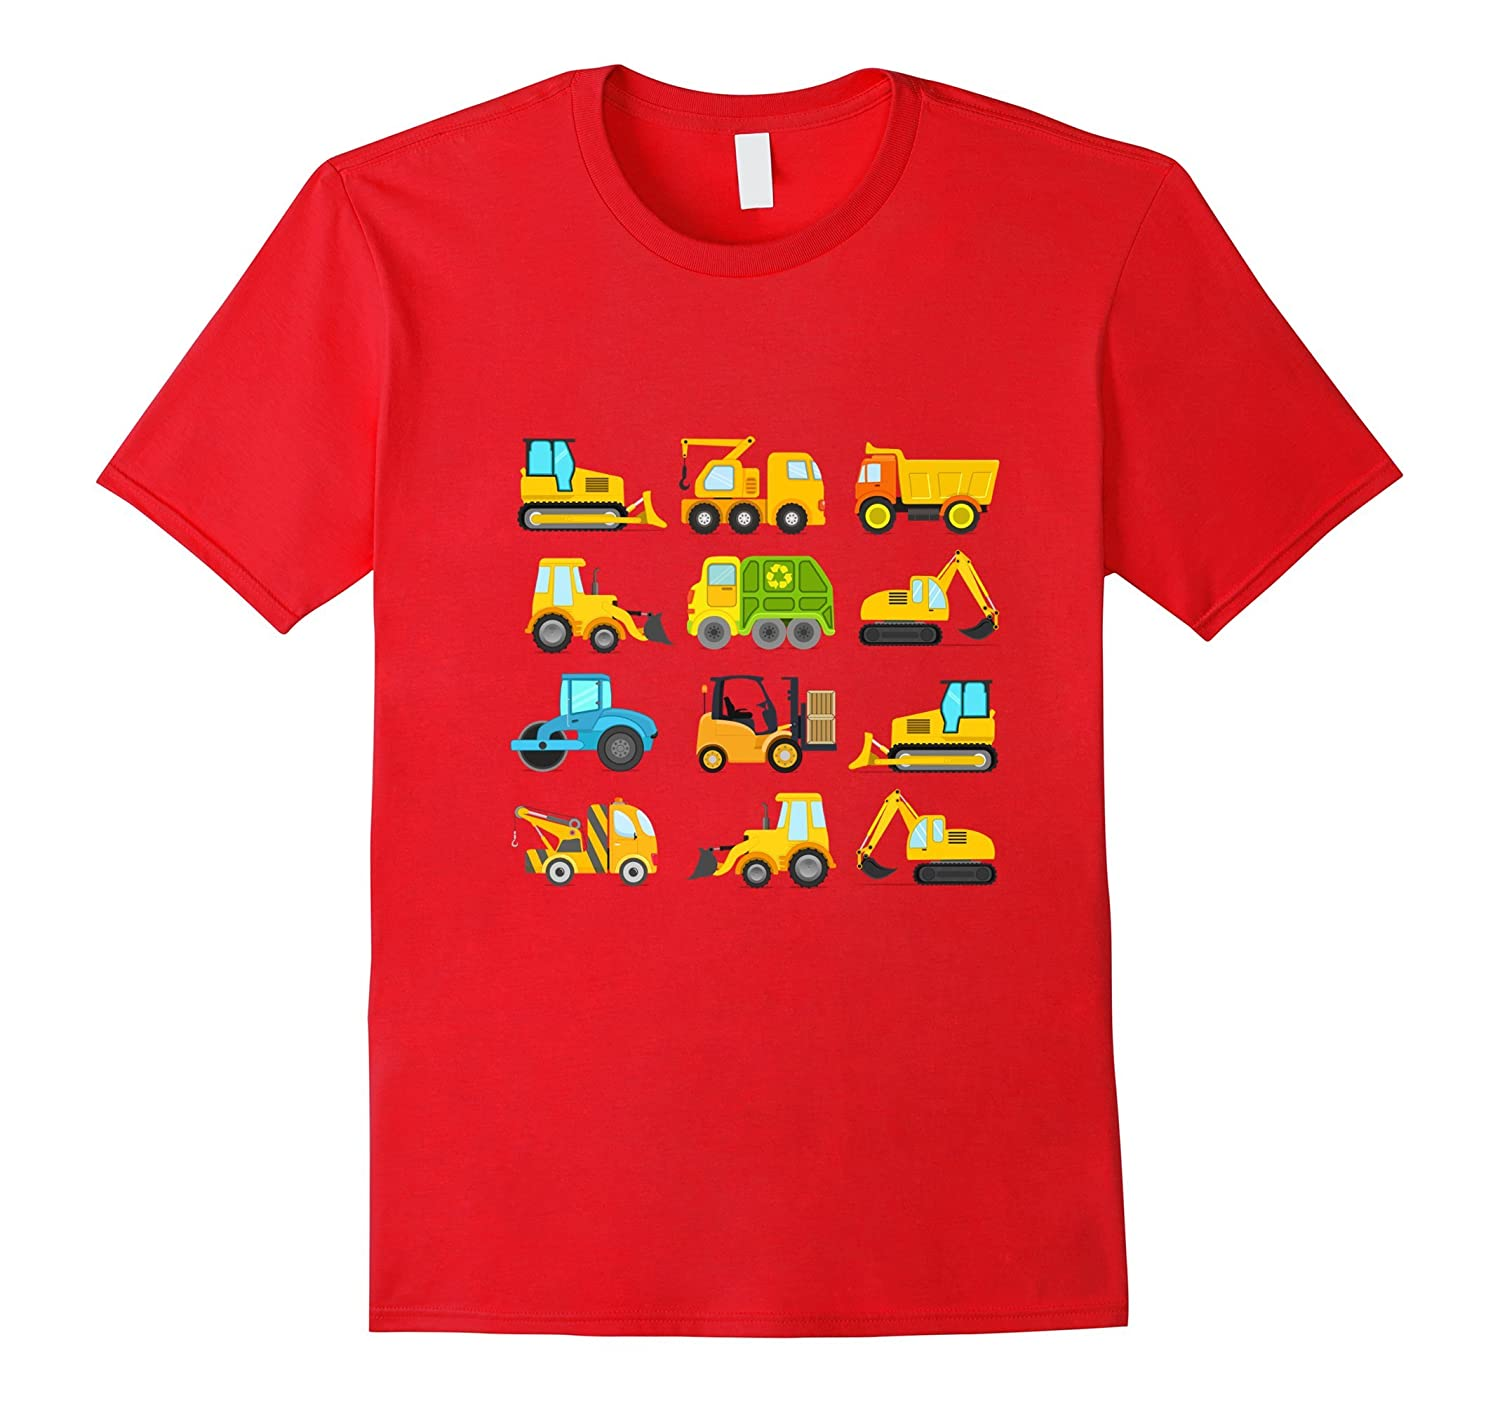 Boys Trucks and Diggers Short Sleeved T-shirt for Toddlers-Vaci